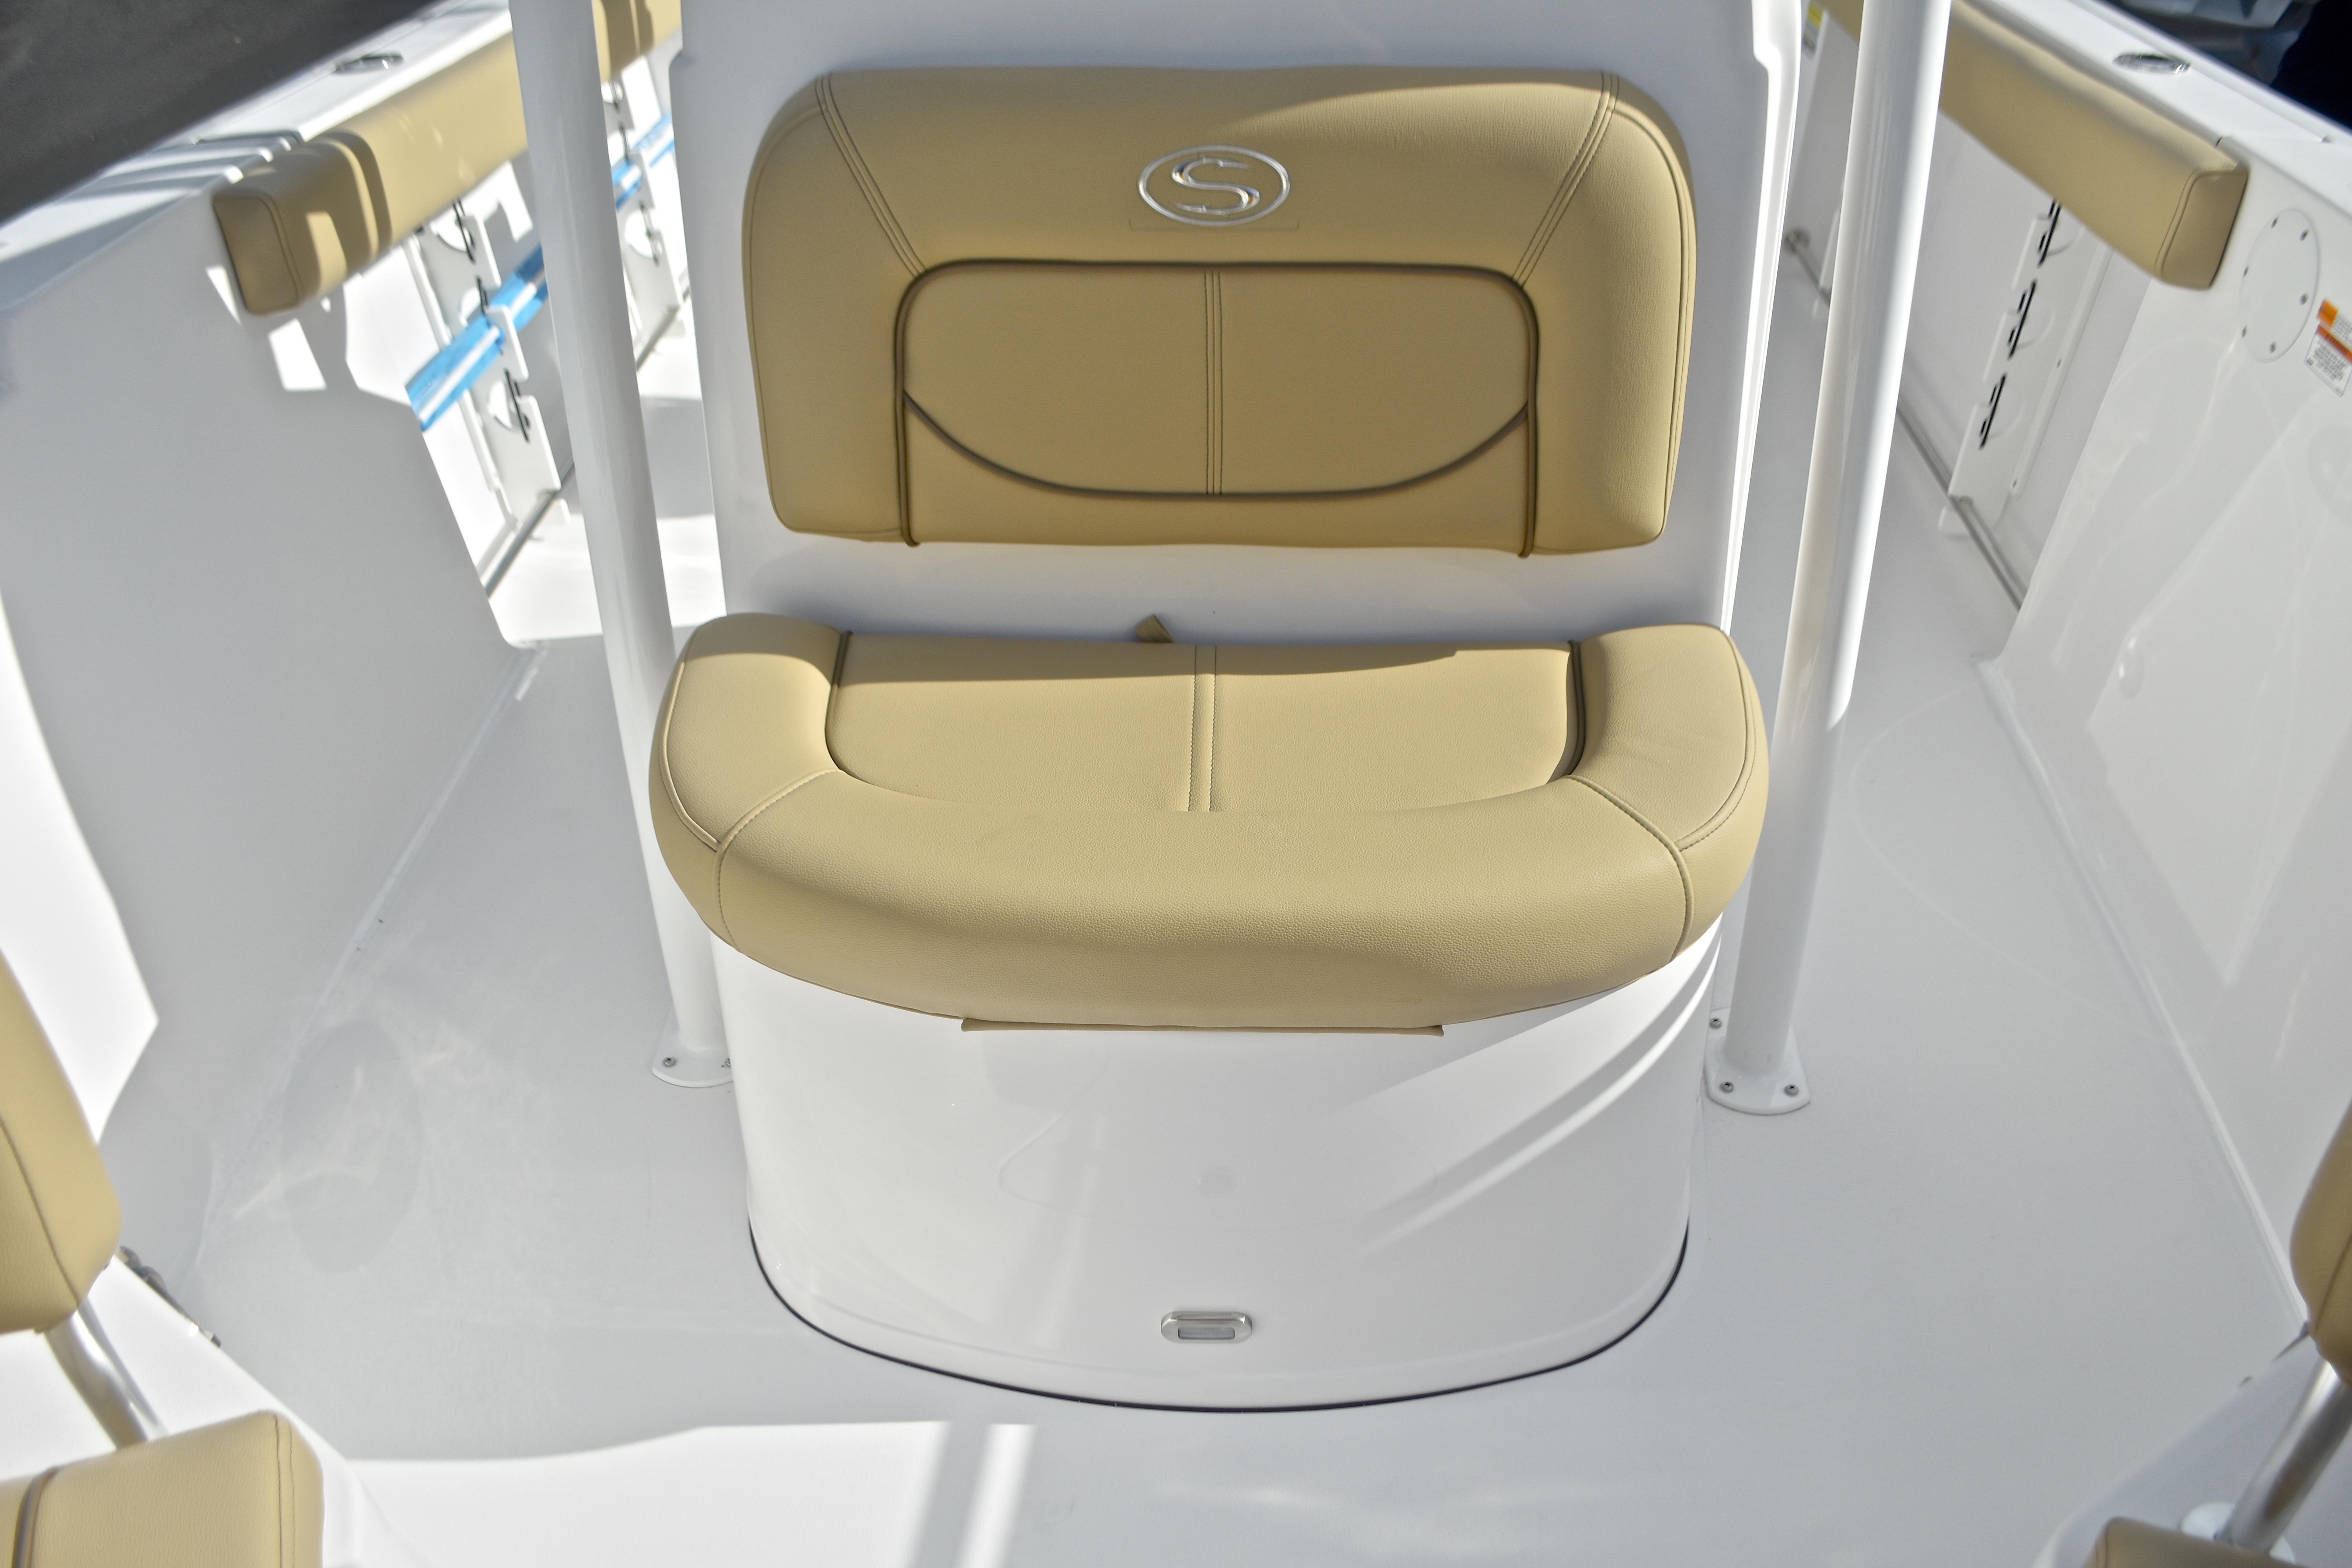 Thumbnail 51 for New 2017 Sportsman Open 232 Center Console boat for sale in West Palm Beach, FL